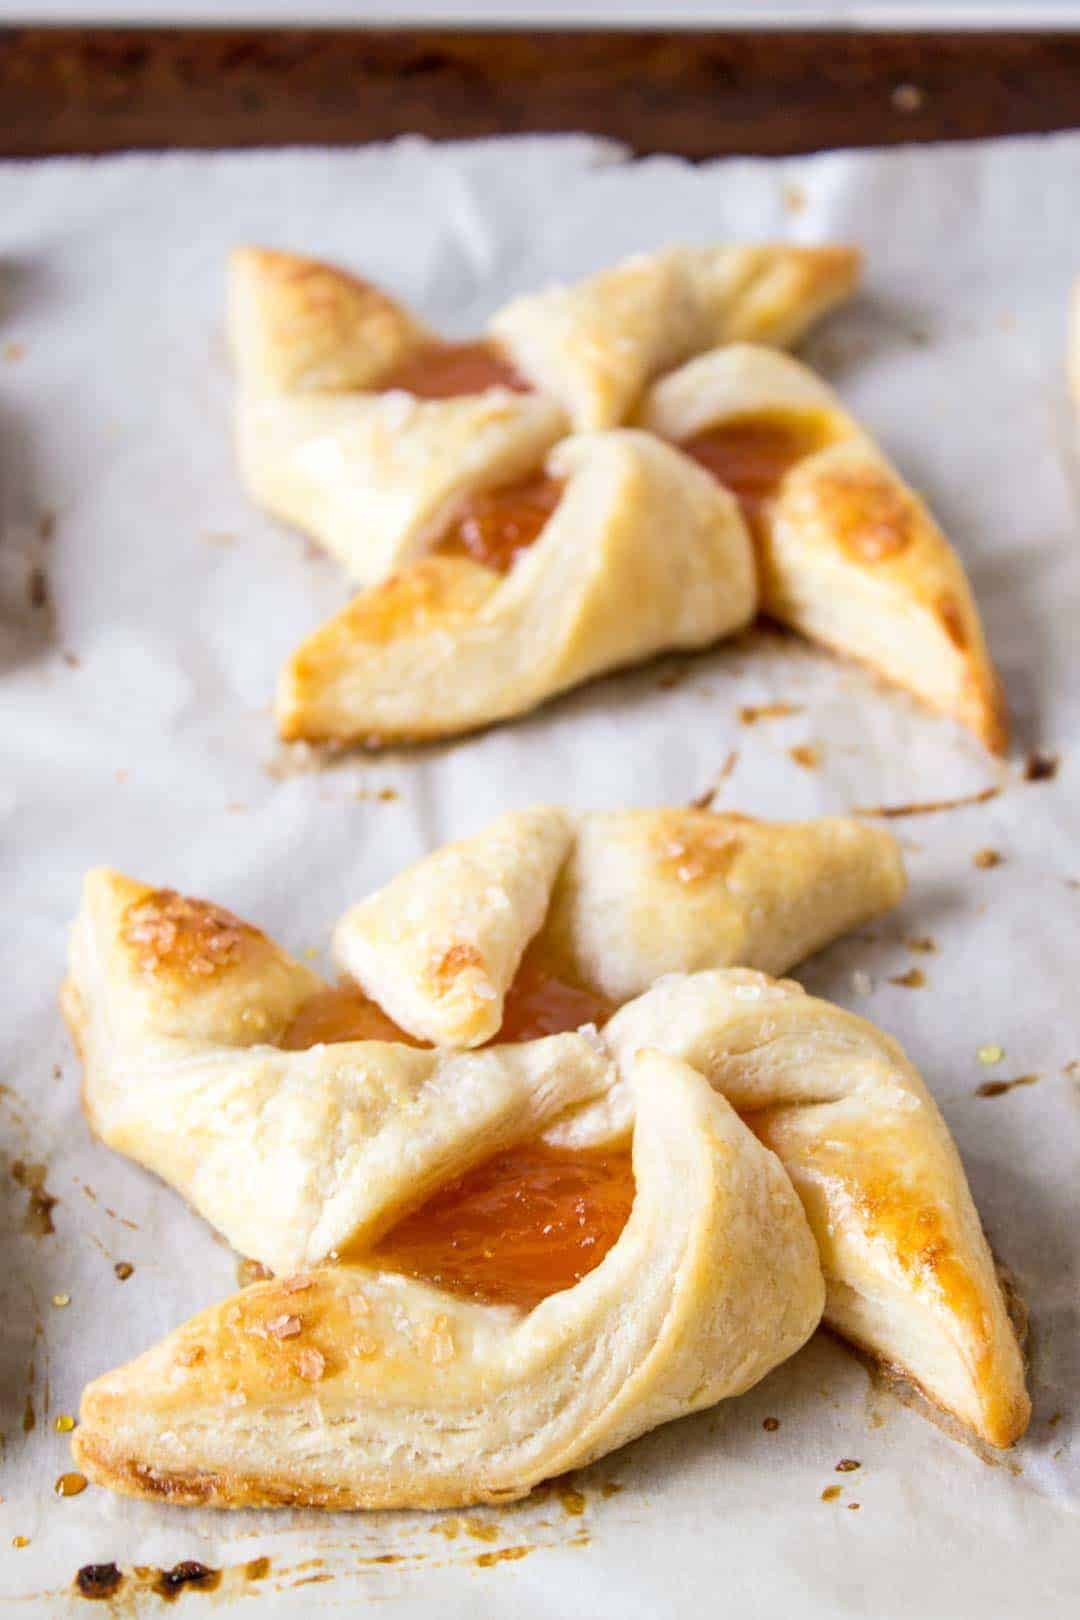 Close up of 2 puff pastry pinwheels filled with jam on a piece of parchment paper